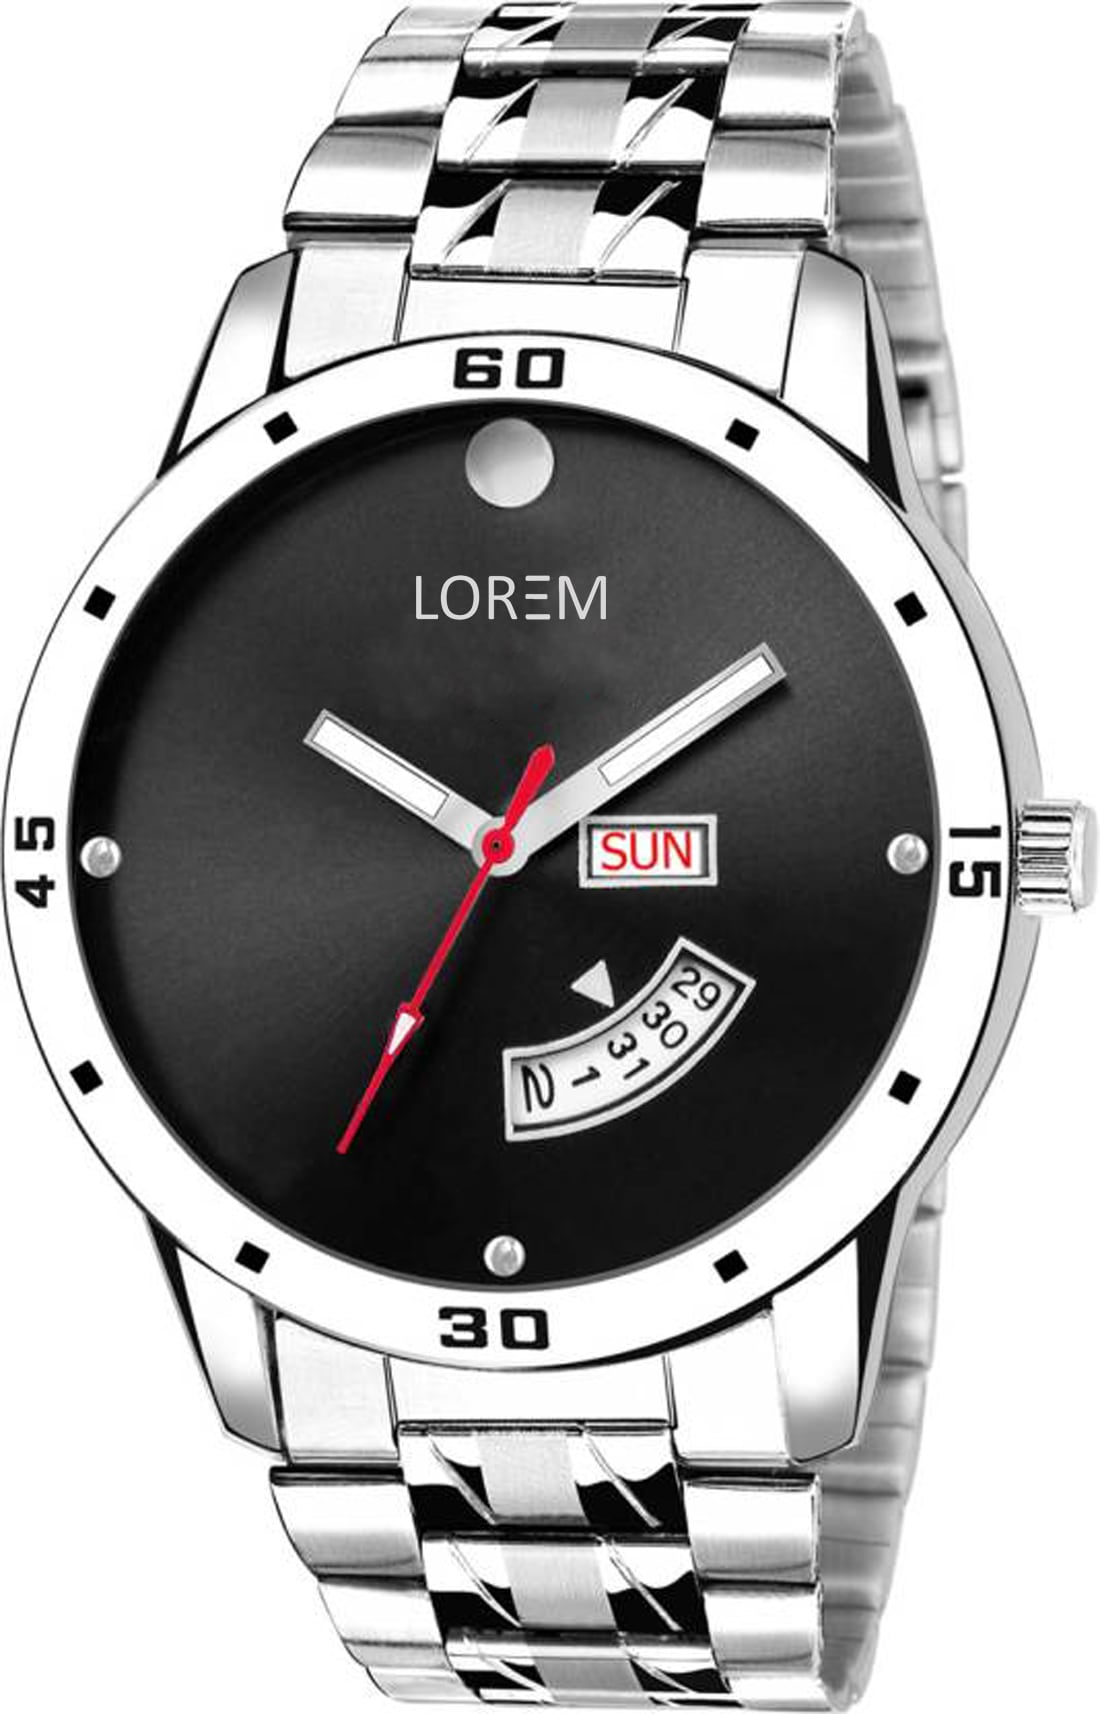 LOREM Watches For Mens Stylish Stainless Steel Belt Black Dial Day And Date Indicator Official Look Watch